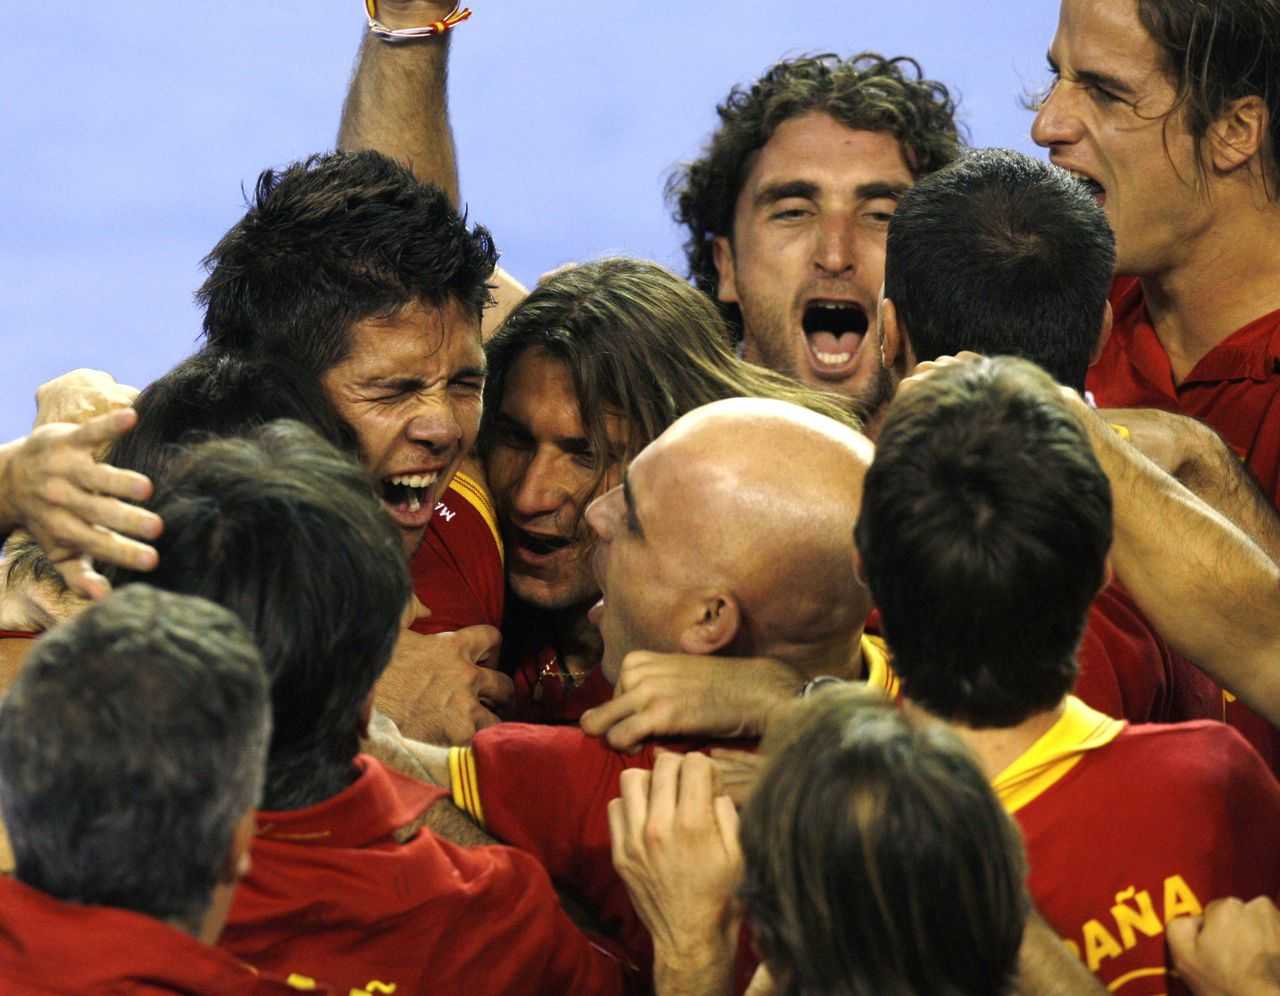 De Spanjaarden vieren de zege na de laatste partij van Fernando Verdasco (linksboven). Foto Reuters Spain's Fernando Verdasco (top L) celebrates with his team mates after winning the game against Argentina's Jose Acasuso during their World Group Davis Cup final tennis match in Mar del Plata November 23, 2008. REUTERS/Marcos Brindicci (ARGENTINA)